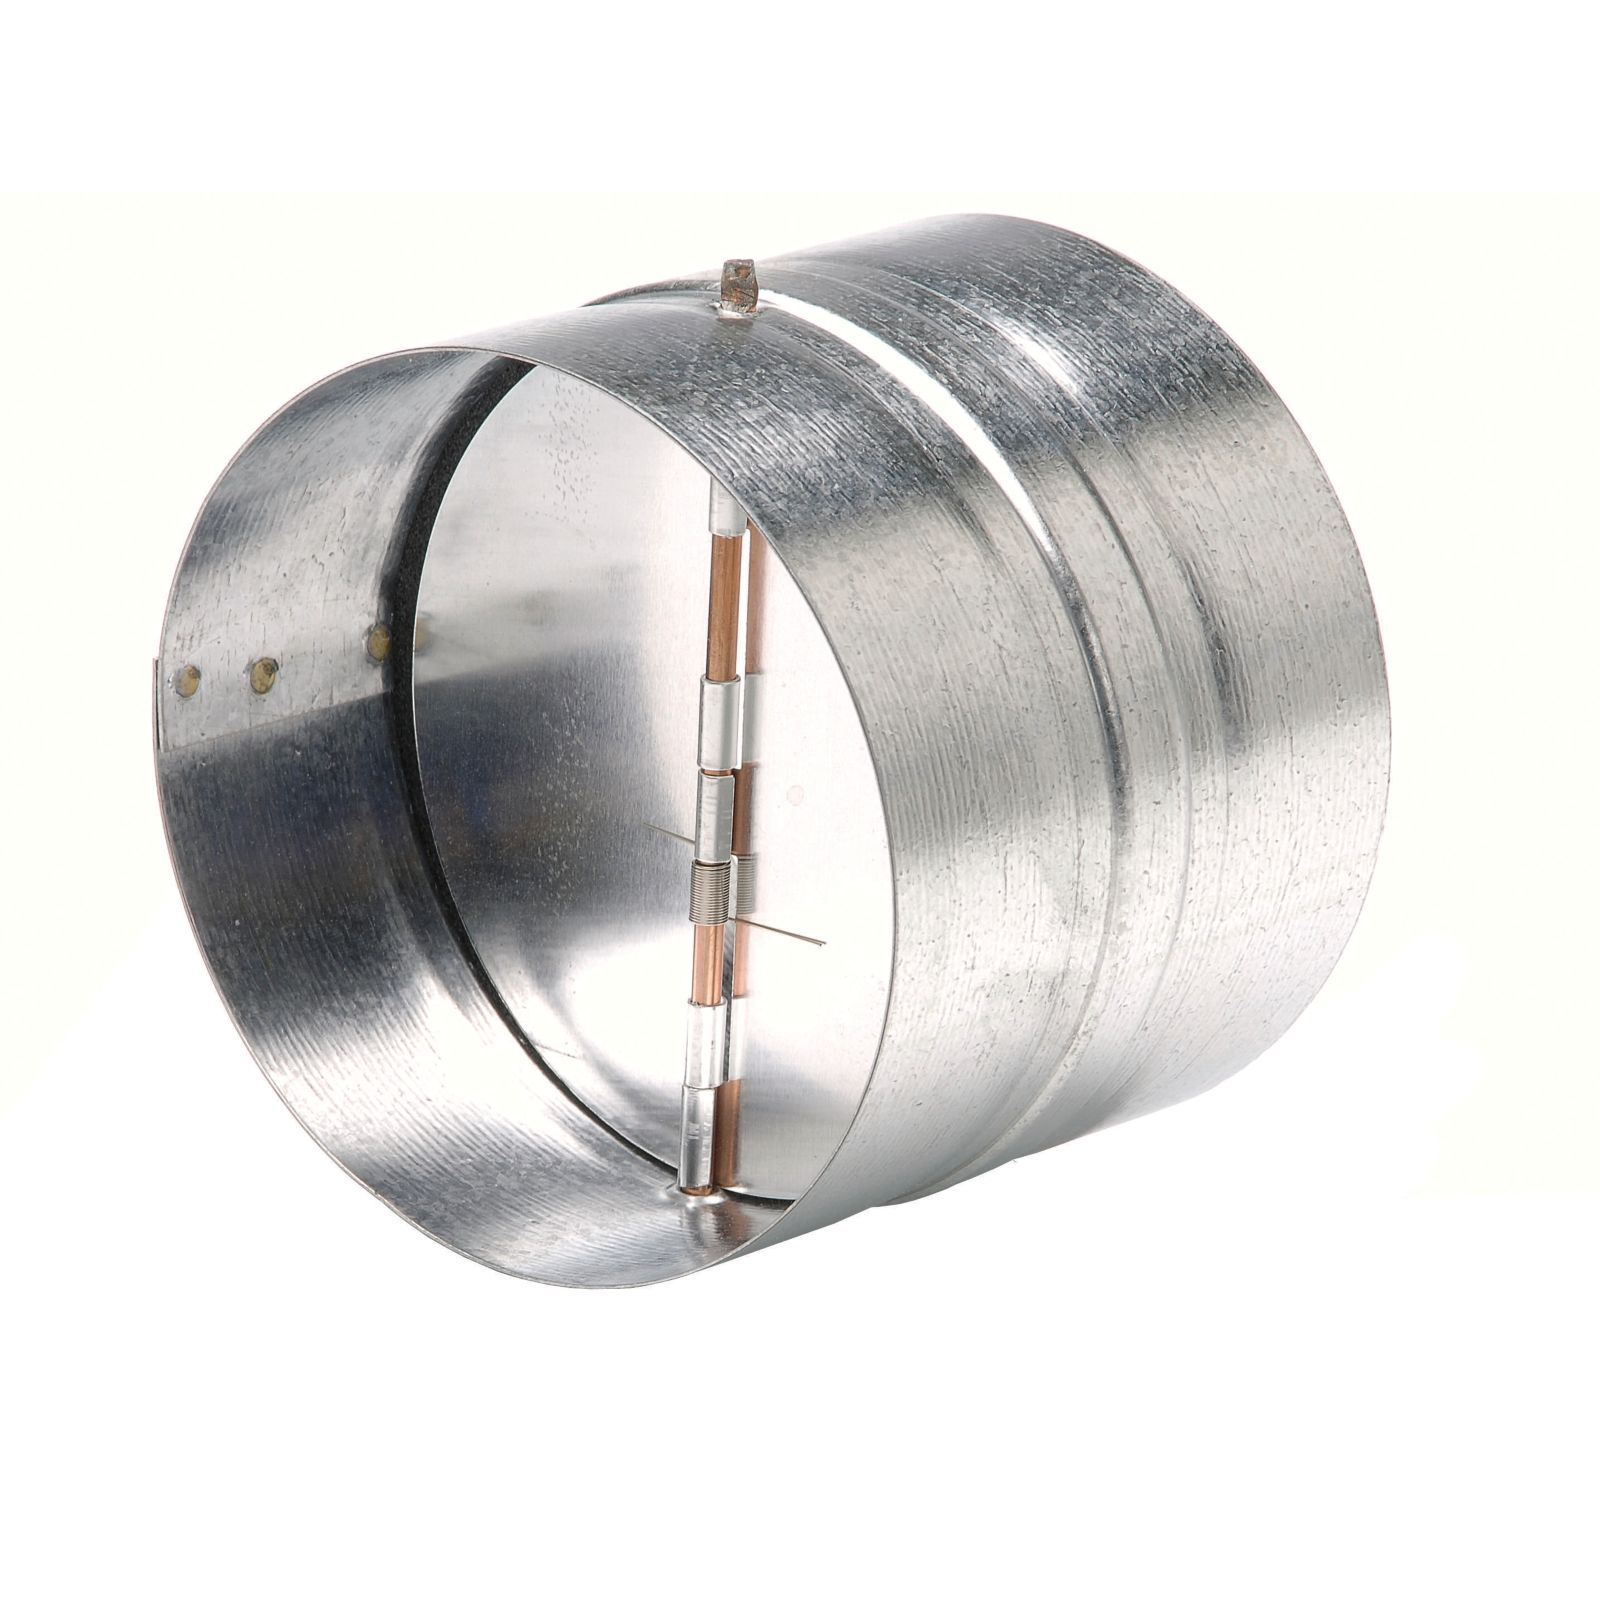 "Soler Palau CAR100 - Steel Backdraft Damper, 4""/100MM"